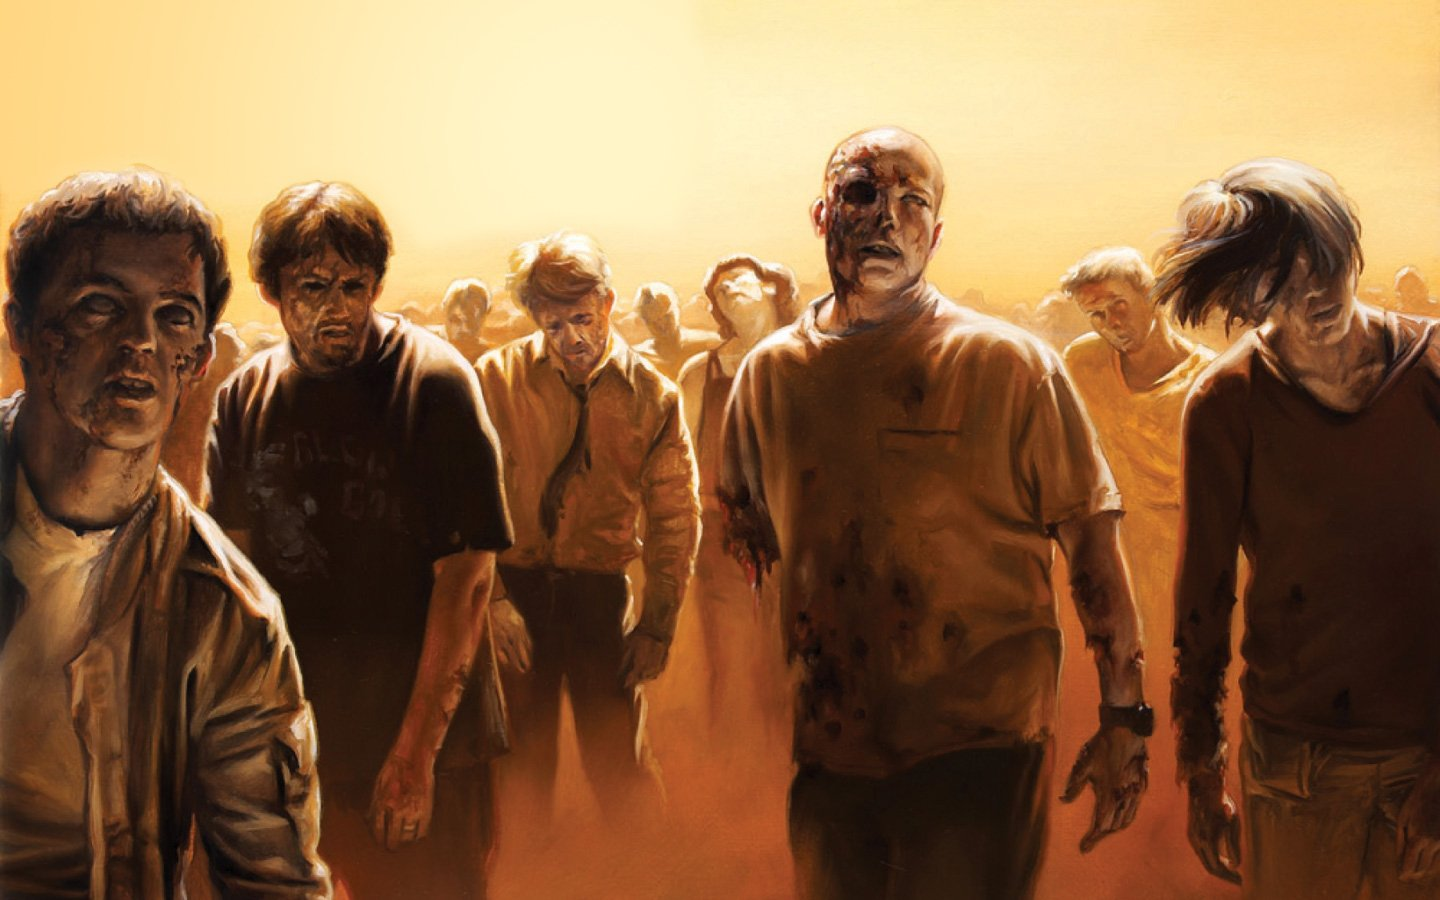 zombies-david-palumbo-new-hd-wallpaper.jpg